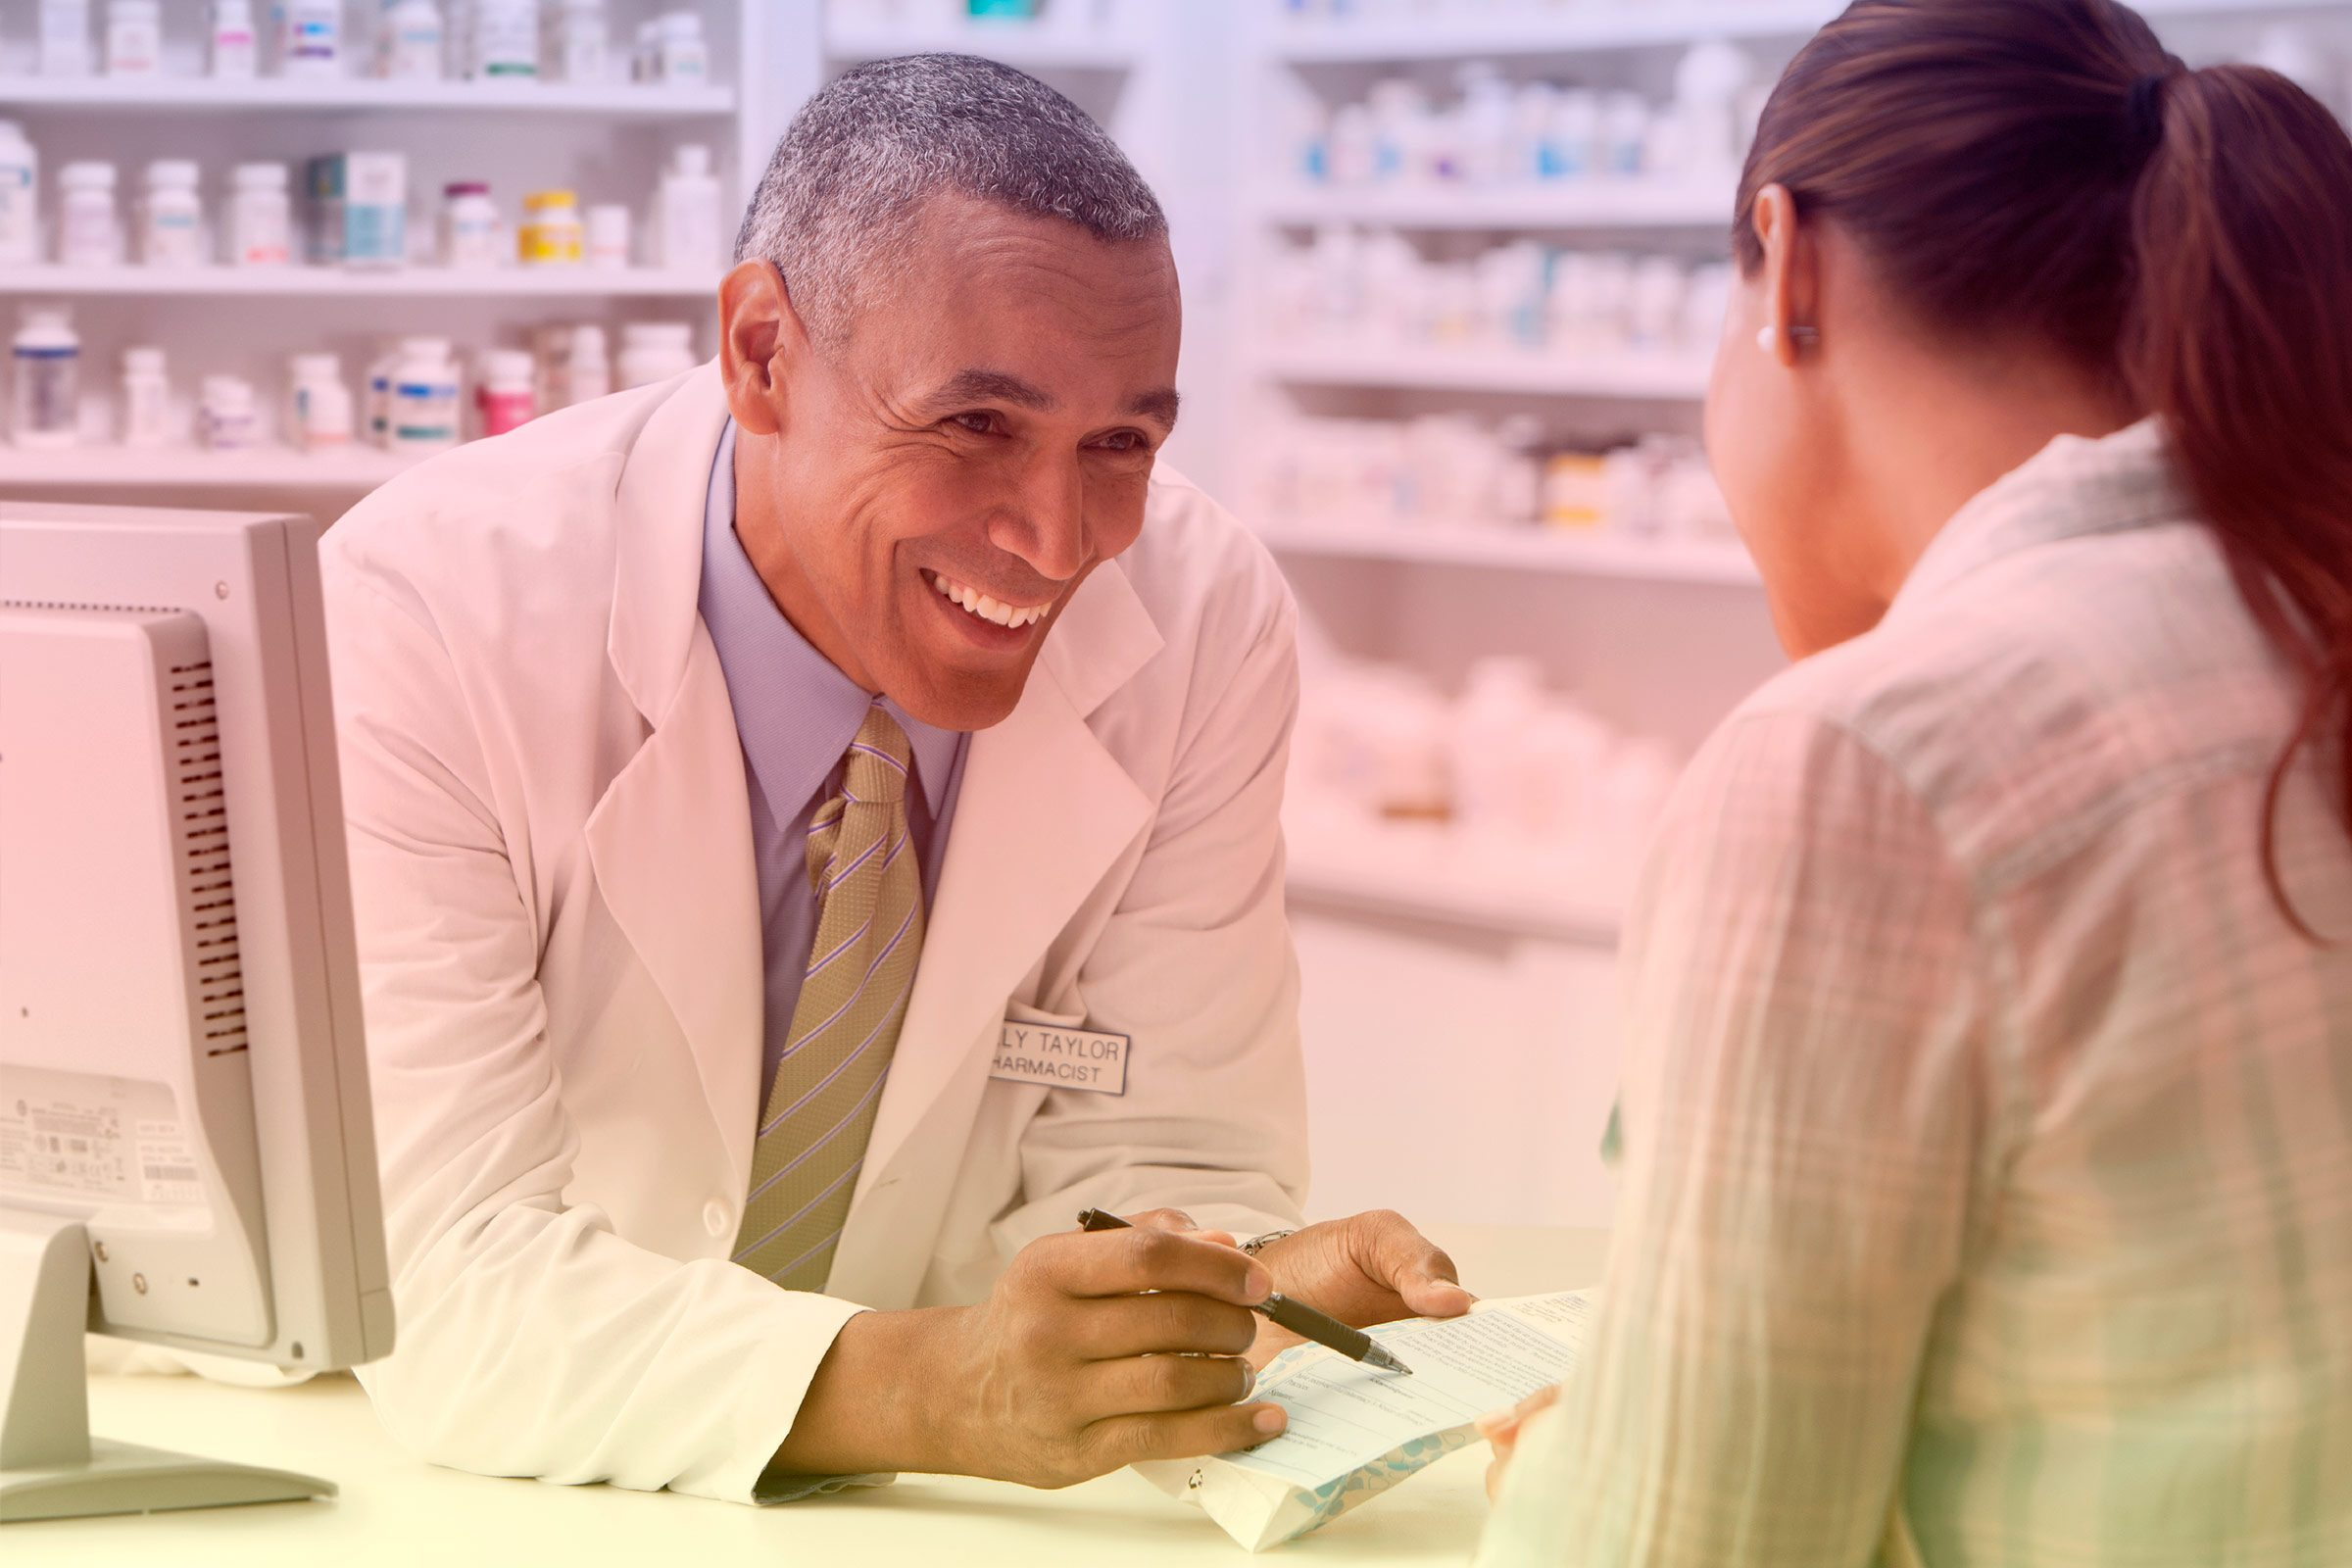 When you pick up your prescription, at a minimum,  ask: